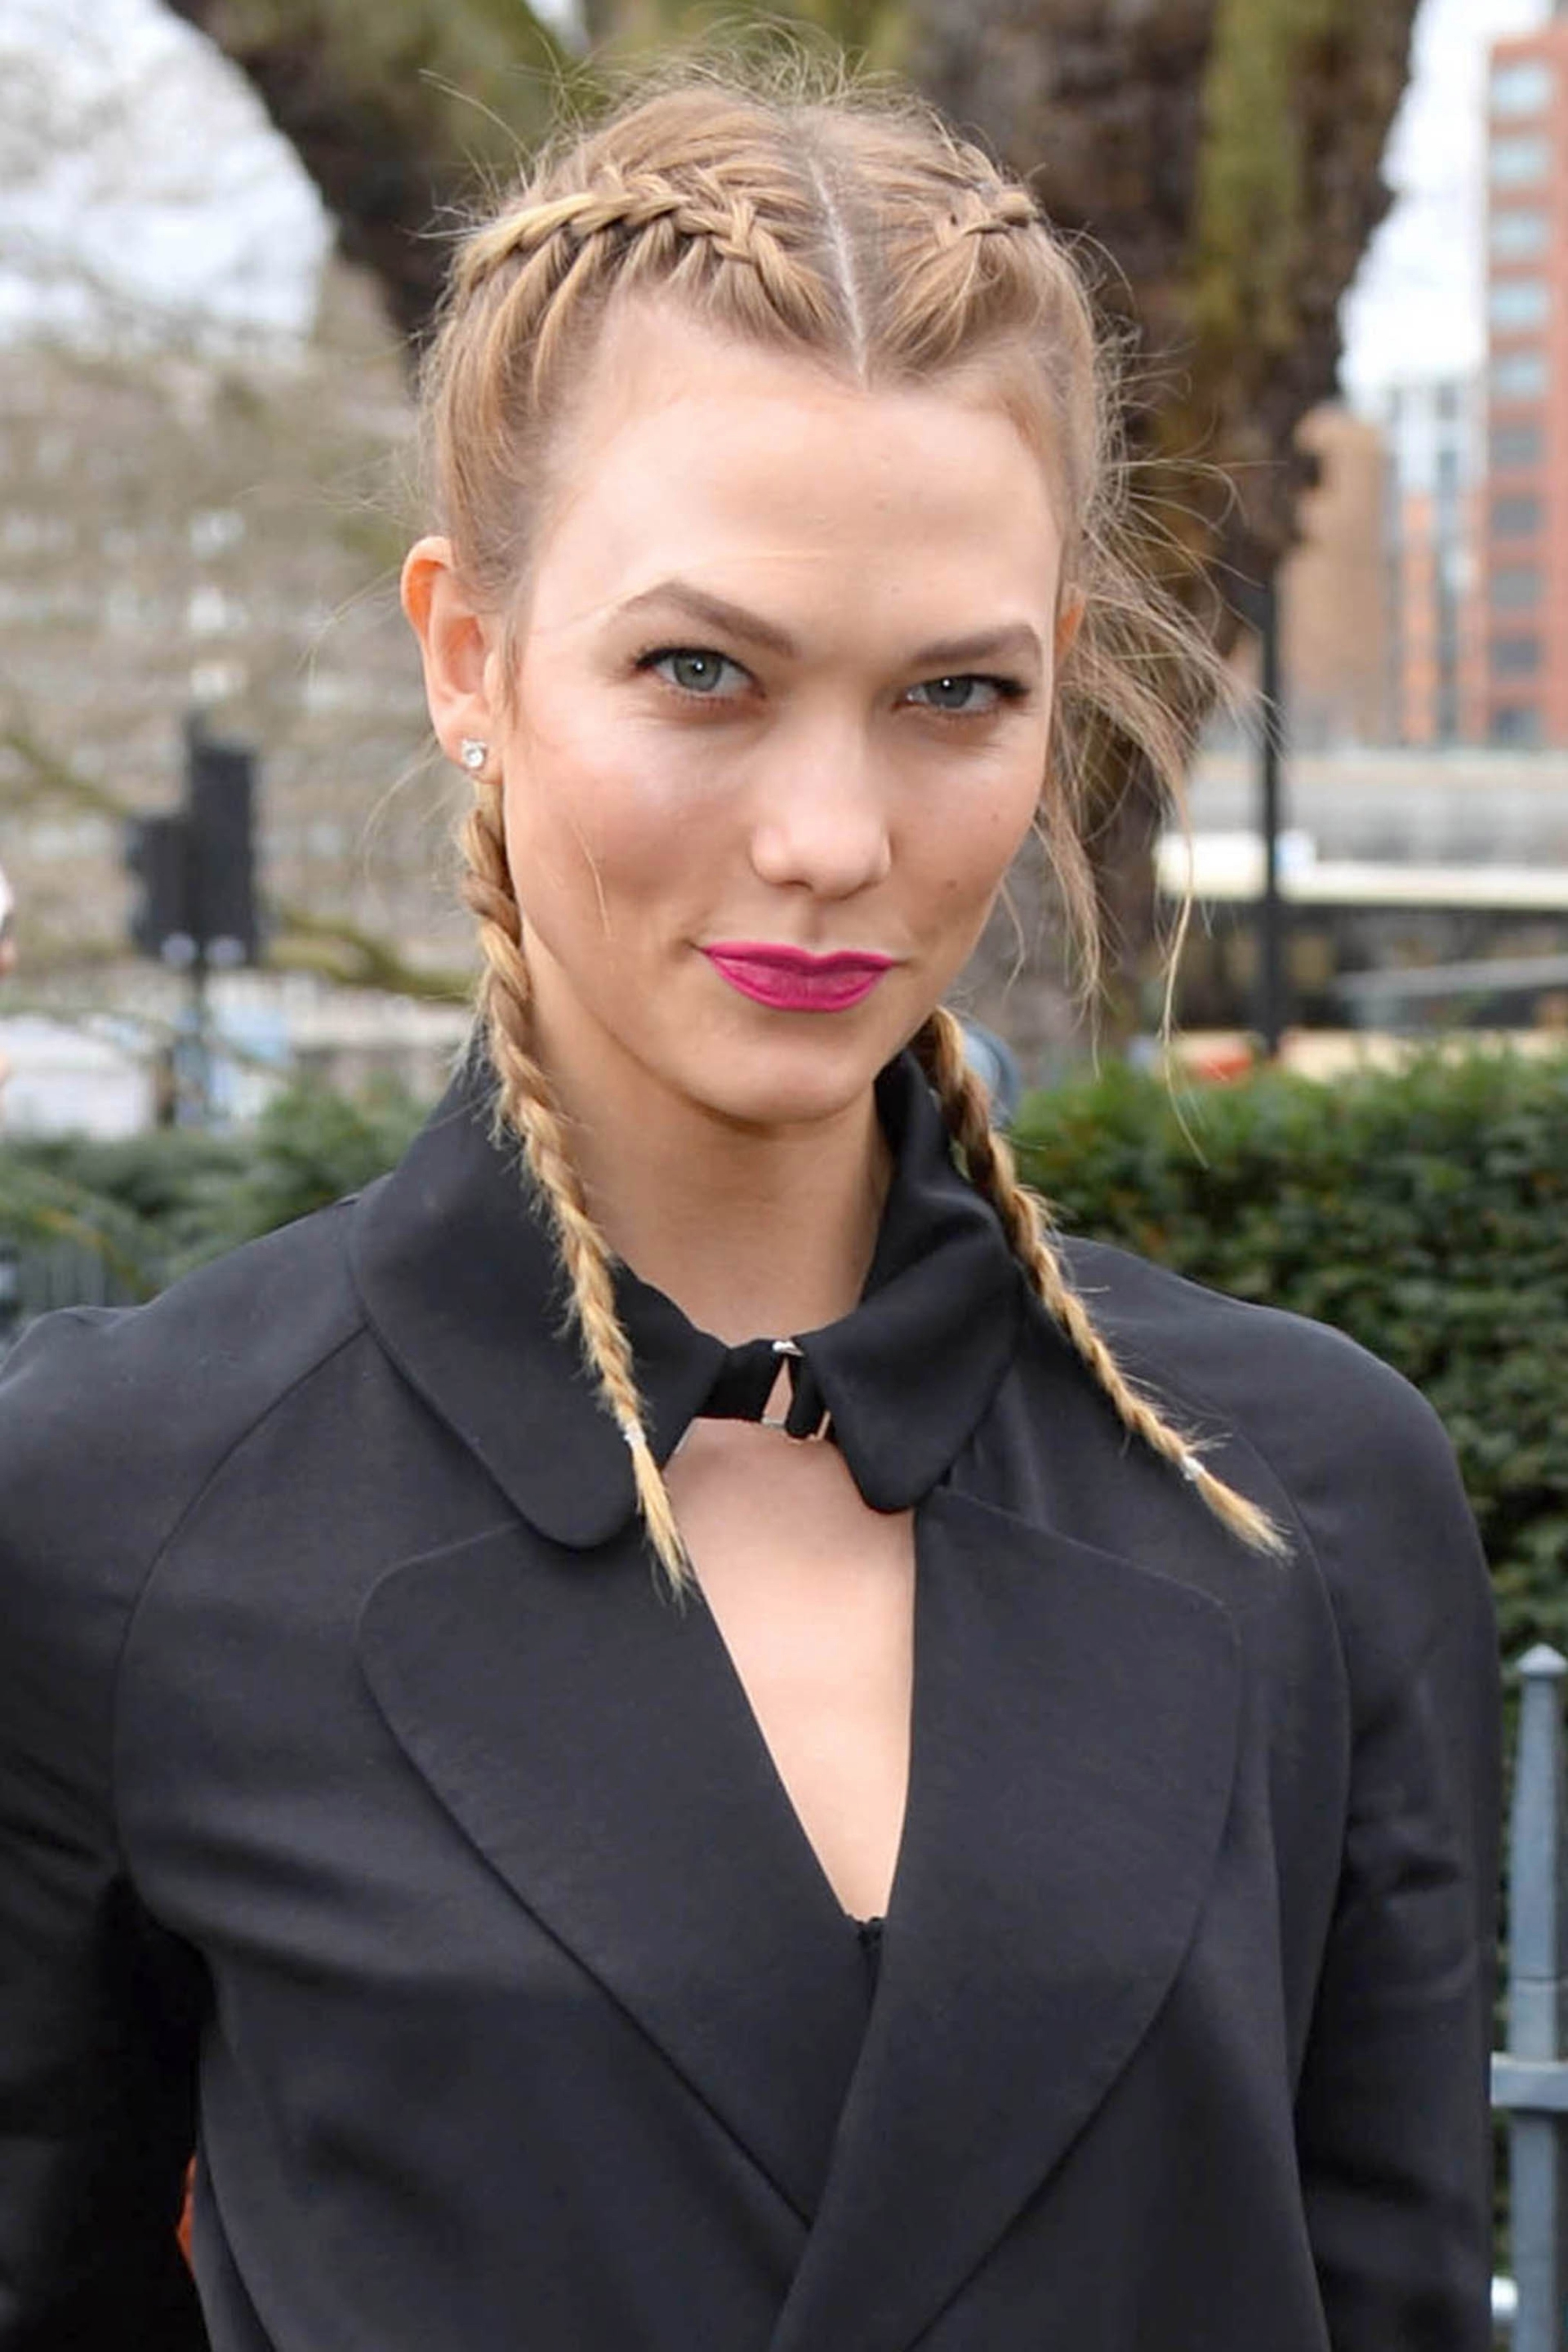 Design Trends Intended For Well Liked Braided Pigtails (View 3 of 15)